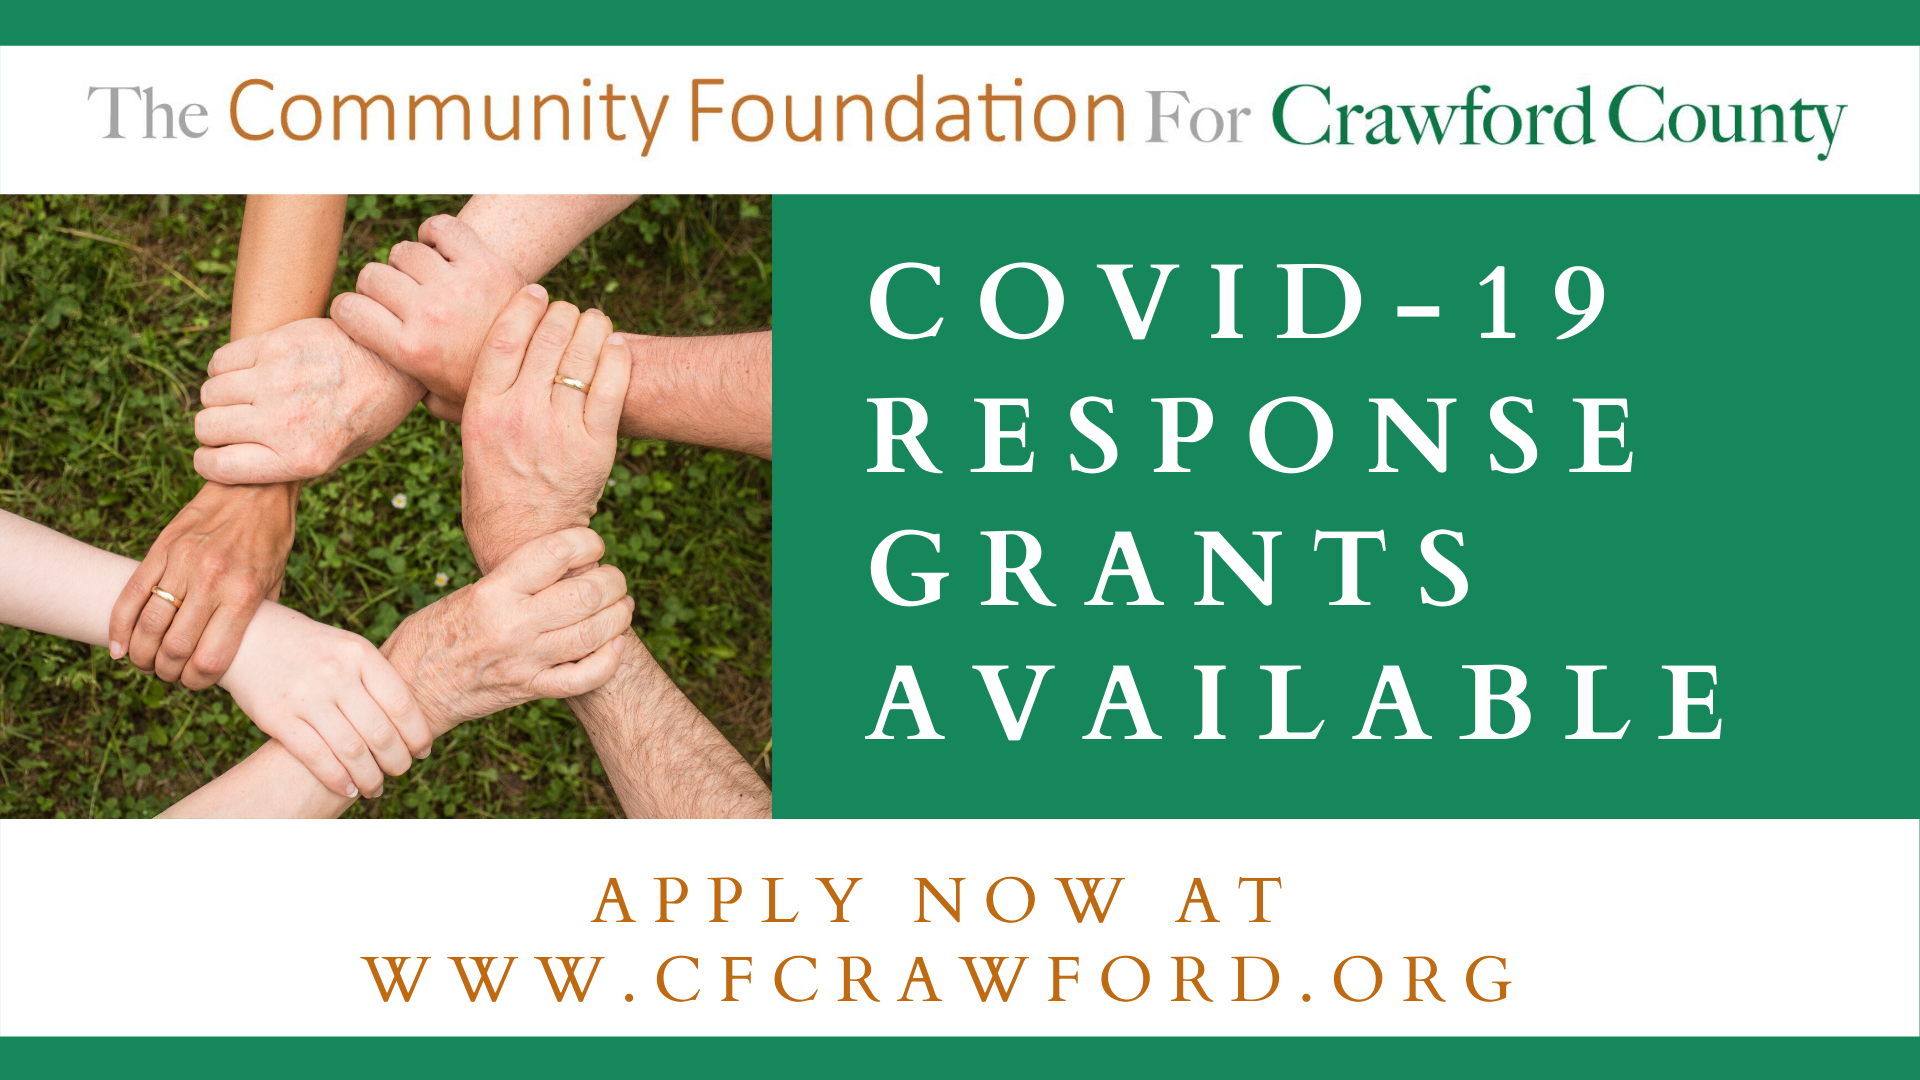 COVID-19 Response Grants Available 2020